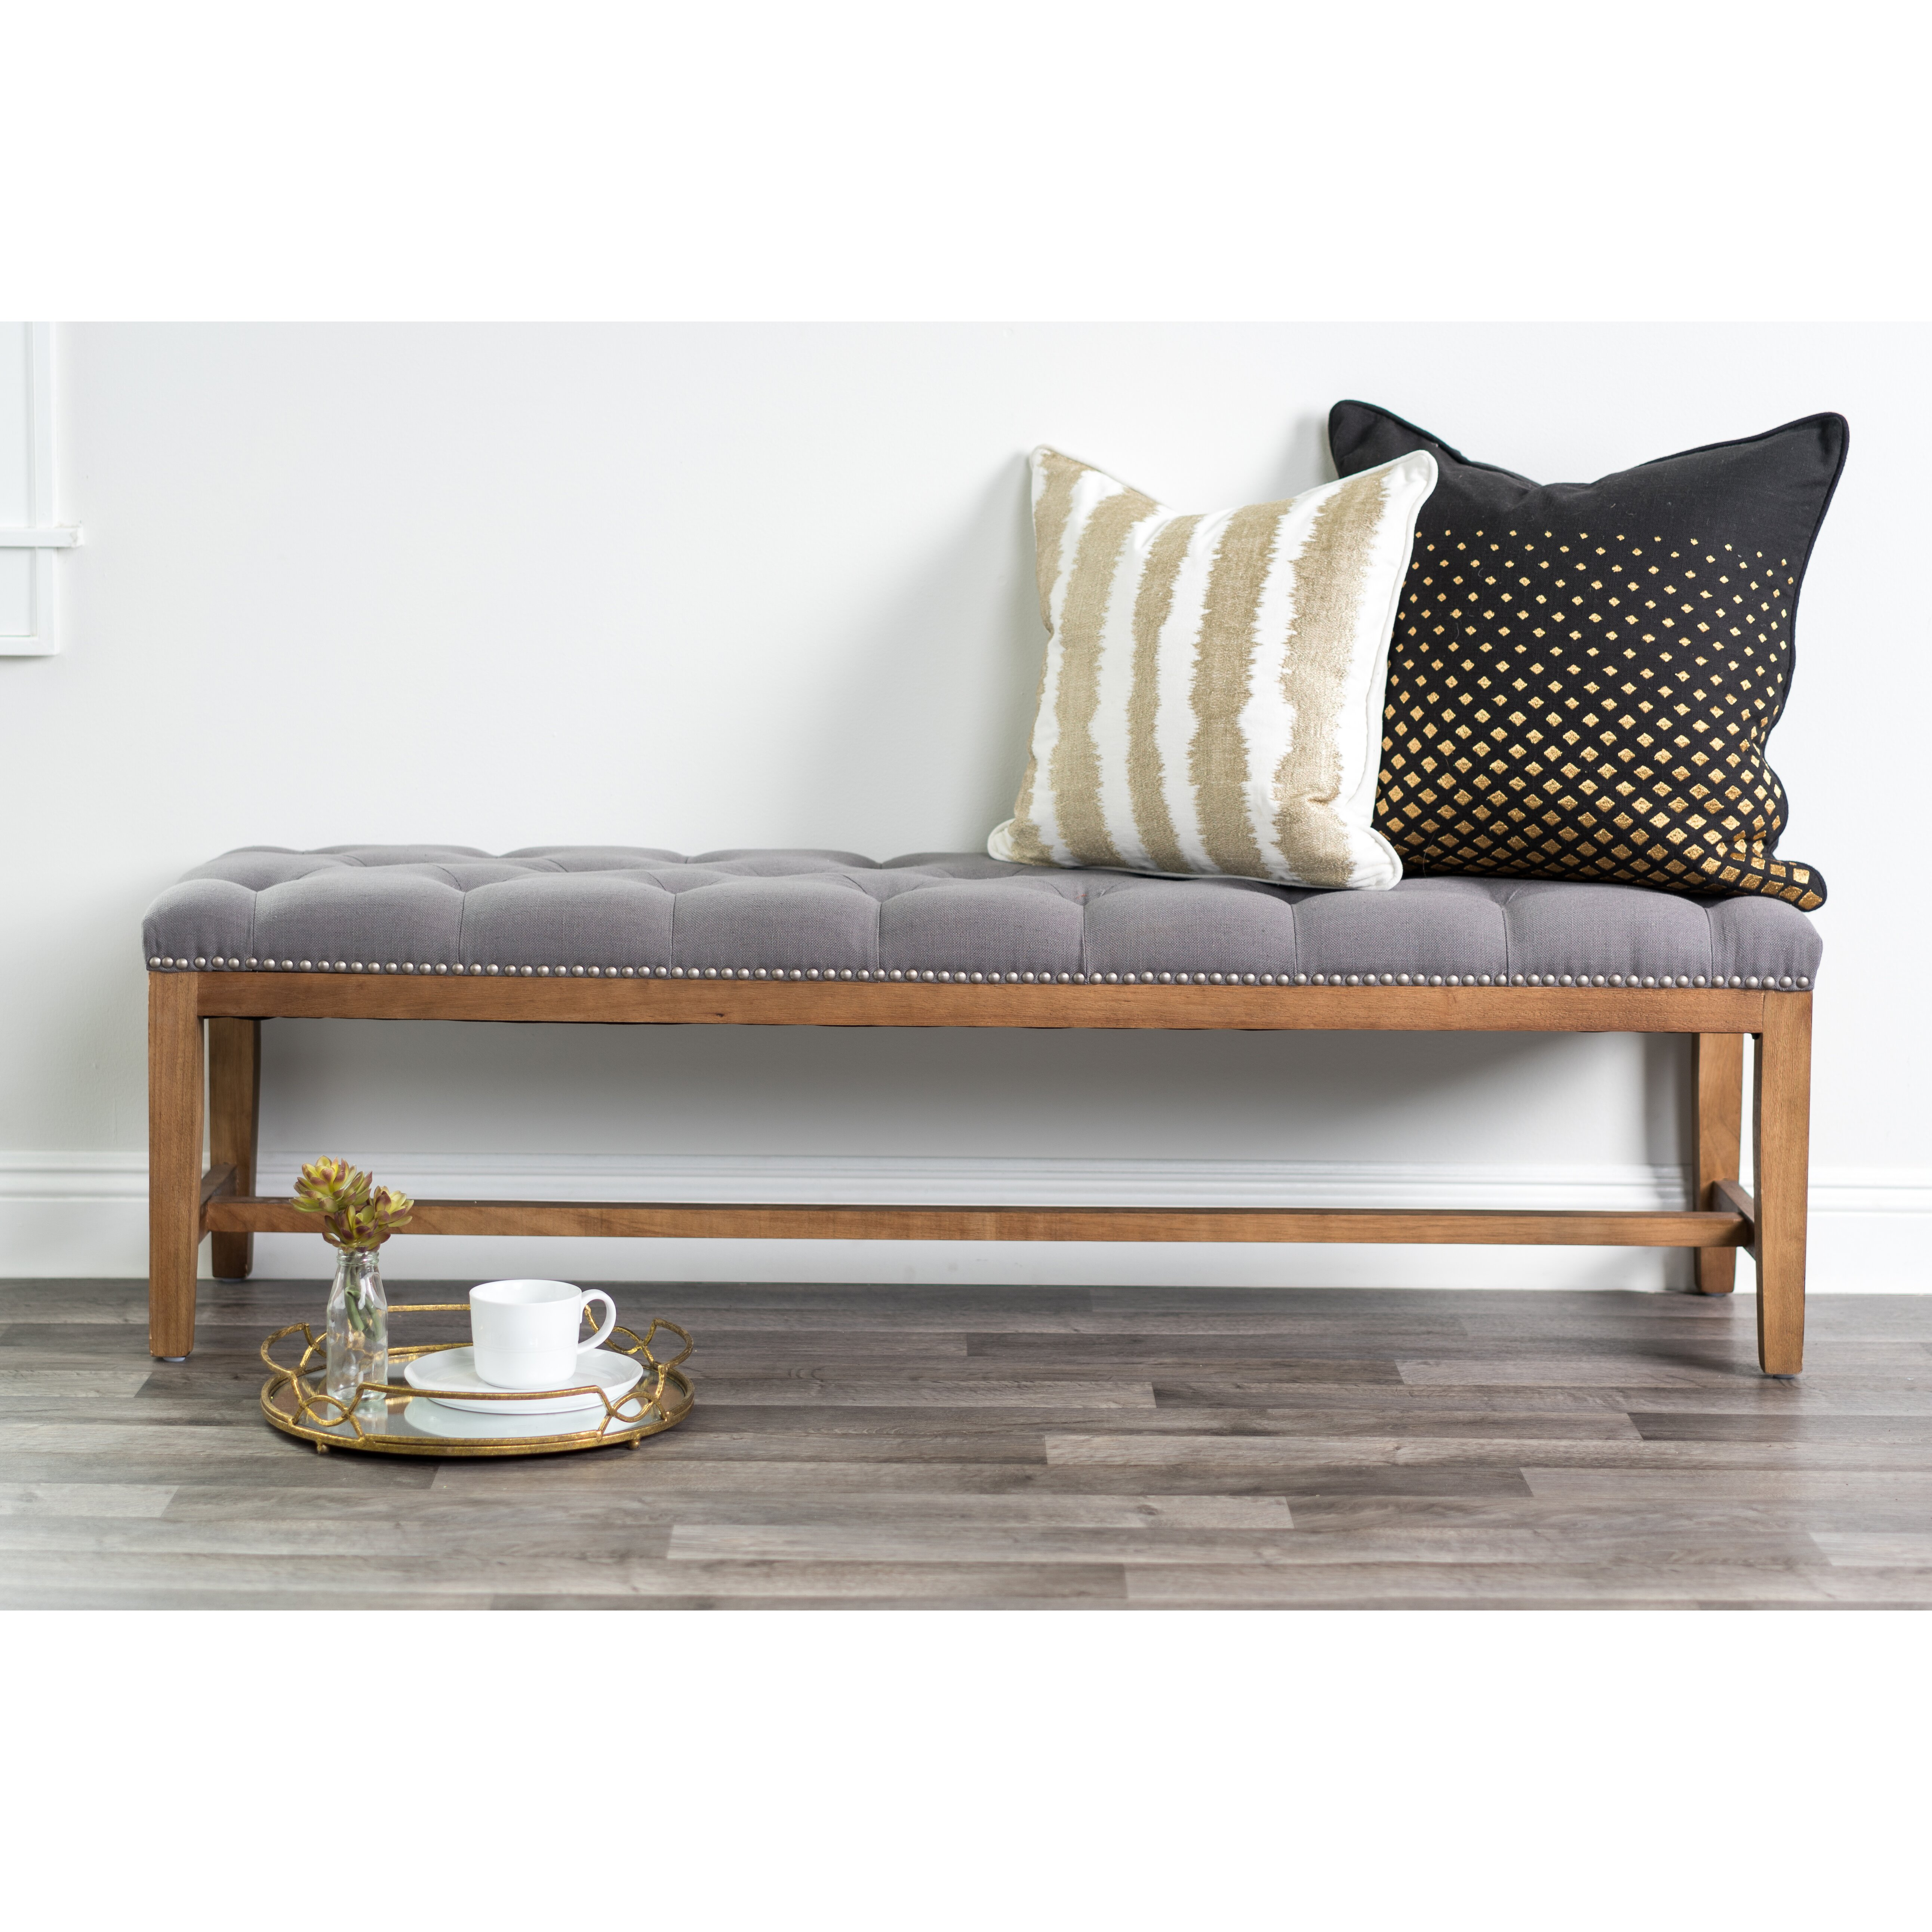 Upholstered Foyer Bench : Bungalow rose viaan upholstered entryway bench wayfair